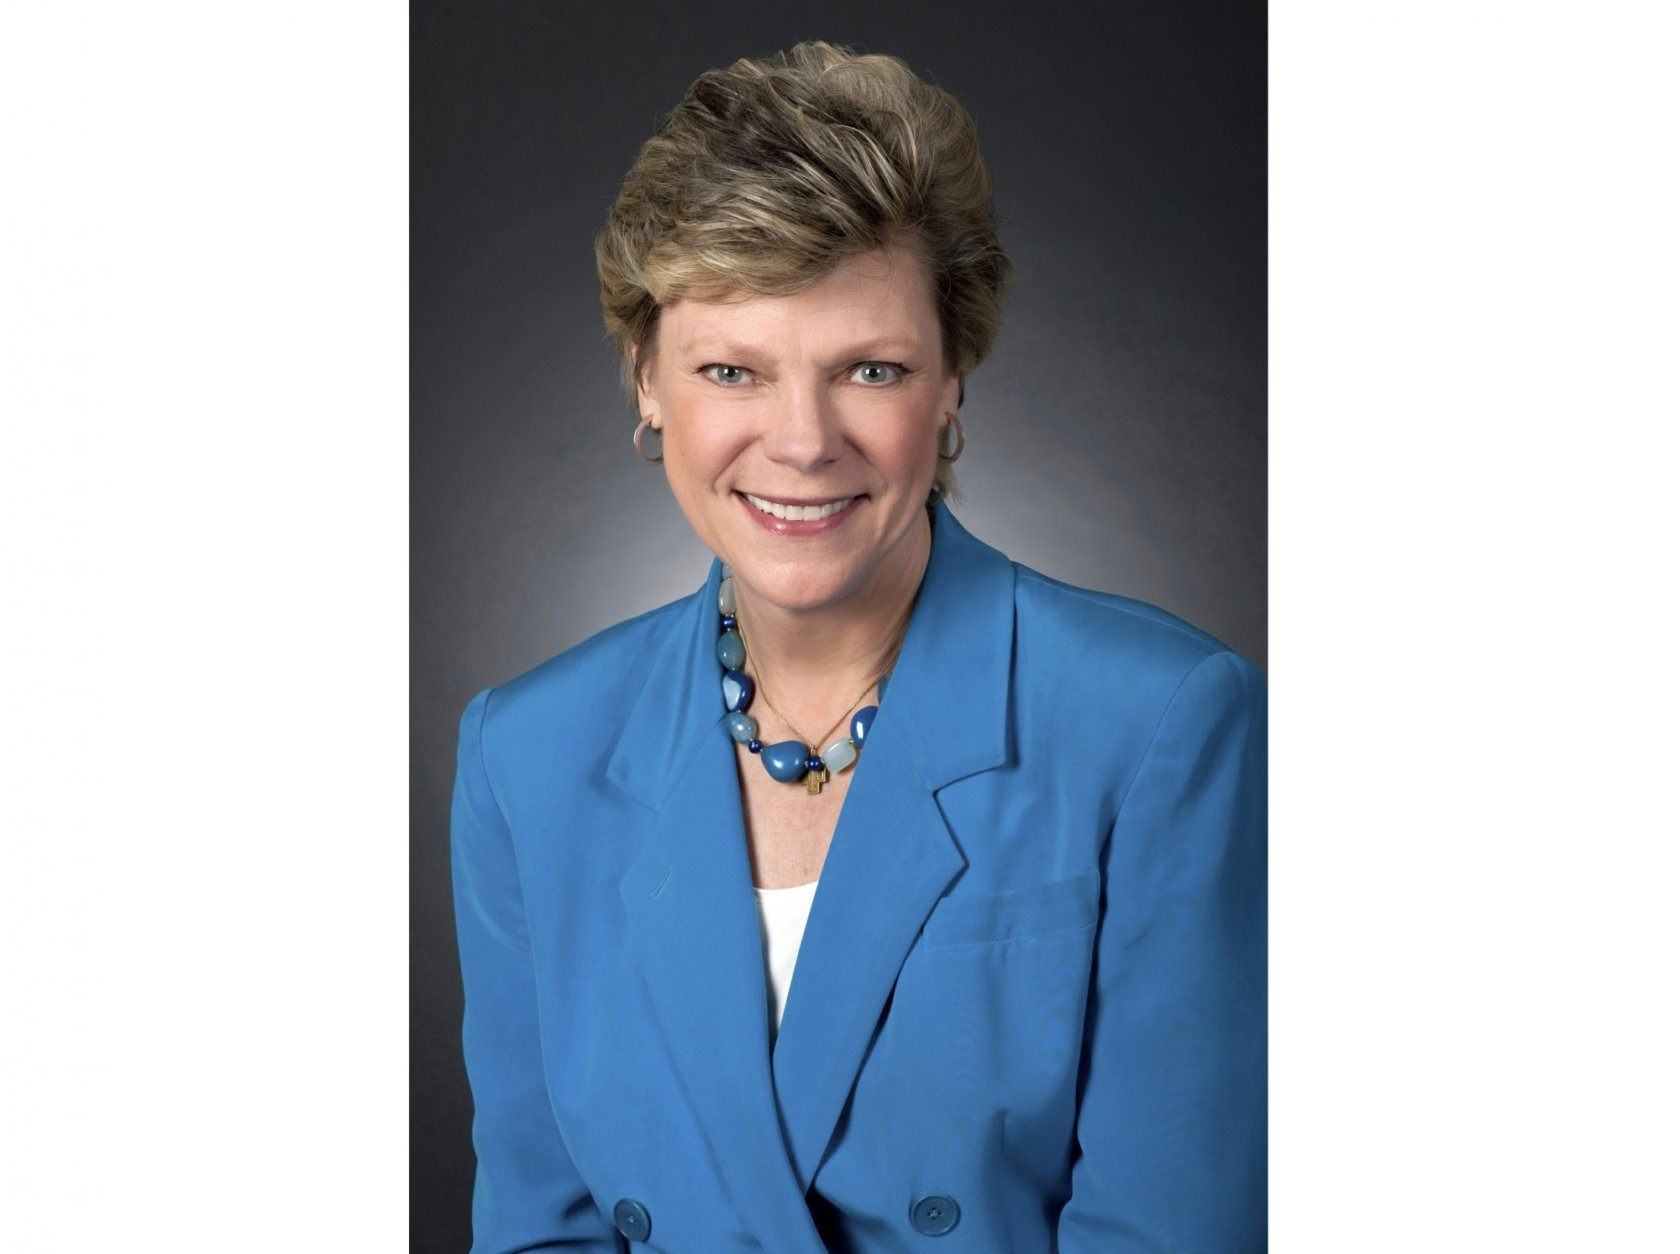 This 2010 photo released by ABC News shows political journalist Cokie Roberts in Washington. Roberts, the daughter of politicians who grew up to cover the family business in Washington for ABC News and NPR over several decades, died Tuesday, Sept. 17, 2019, in Washington of complications from breast cancer. She was 75. (Randy Sager/ABC via AP)